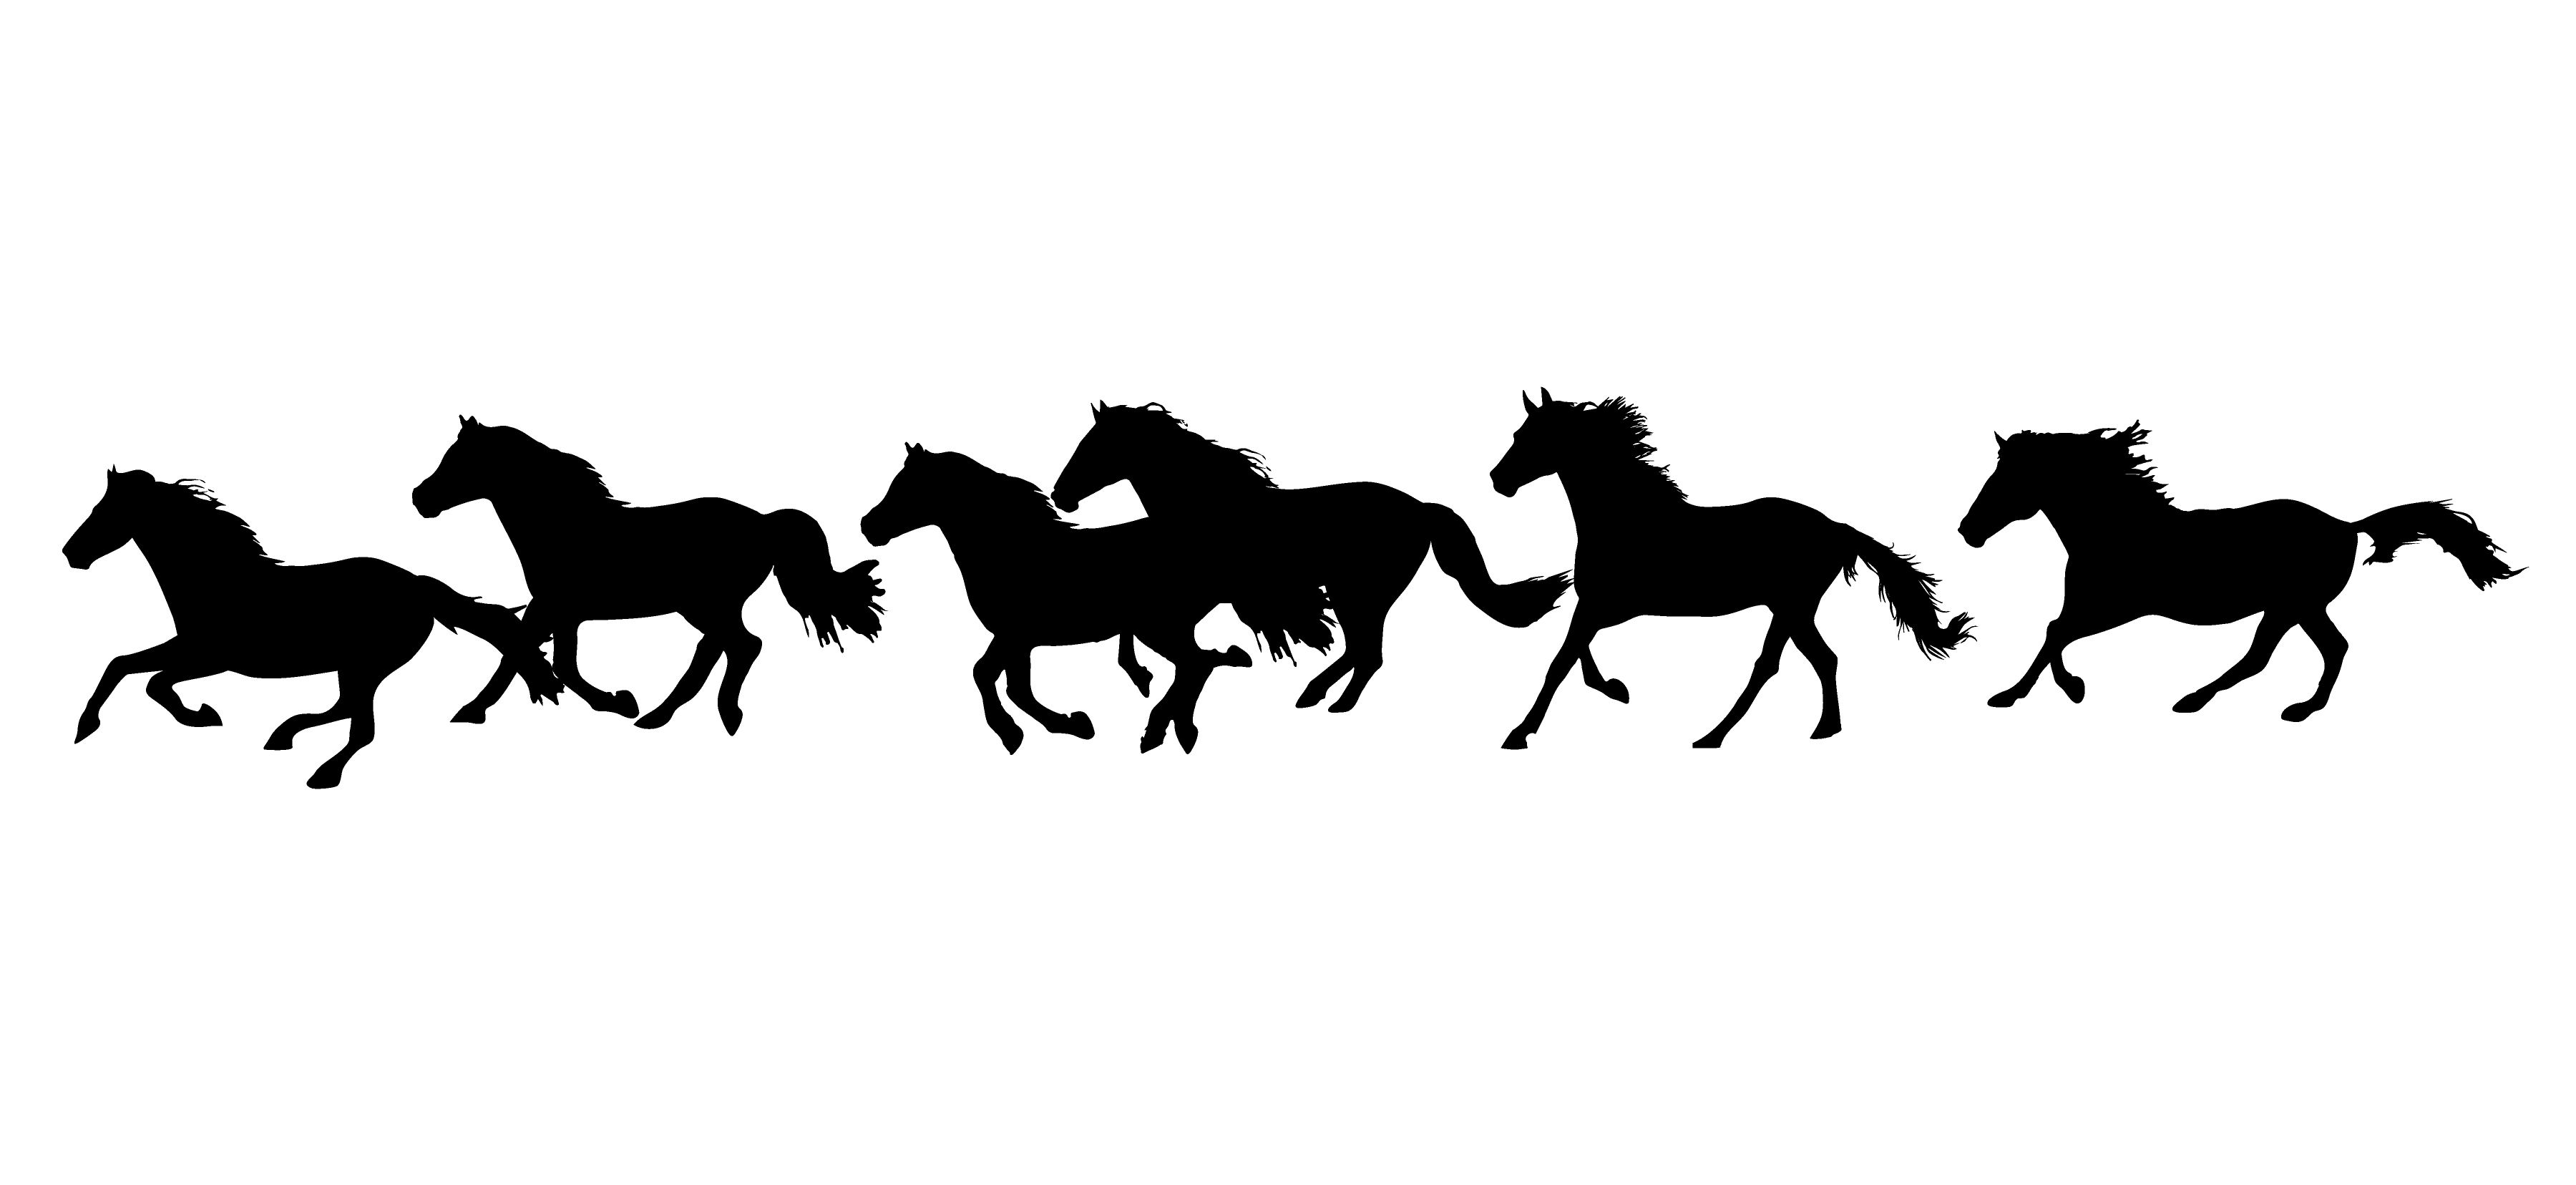 Running Horses   Horse, Silhouettes and Stenciling